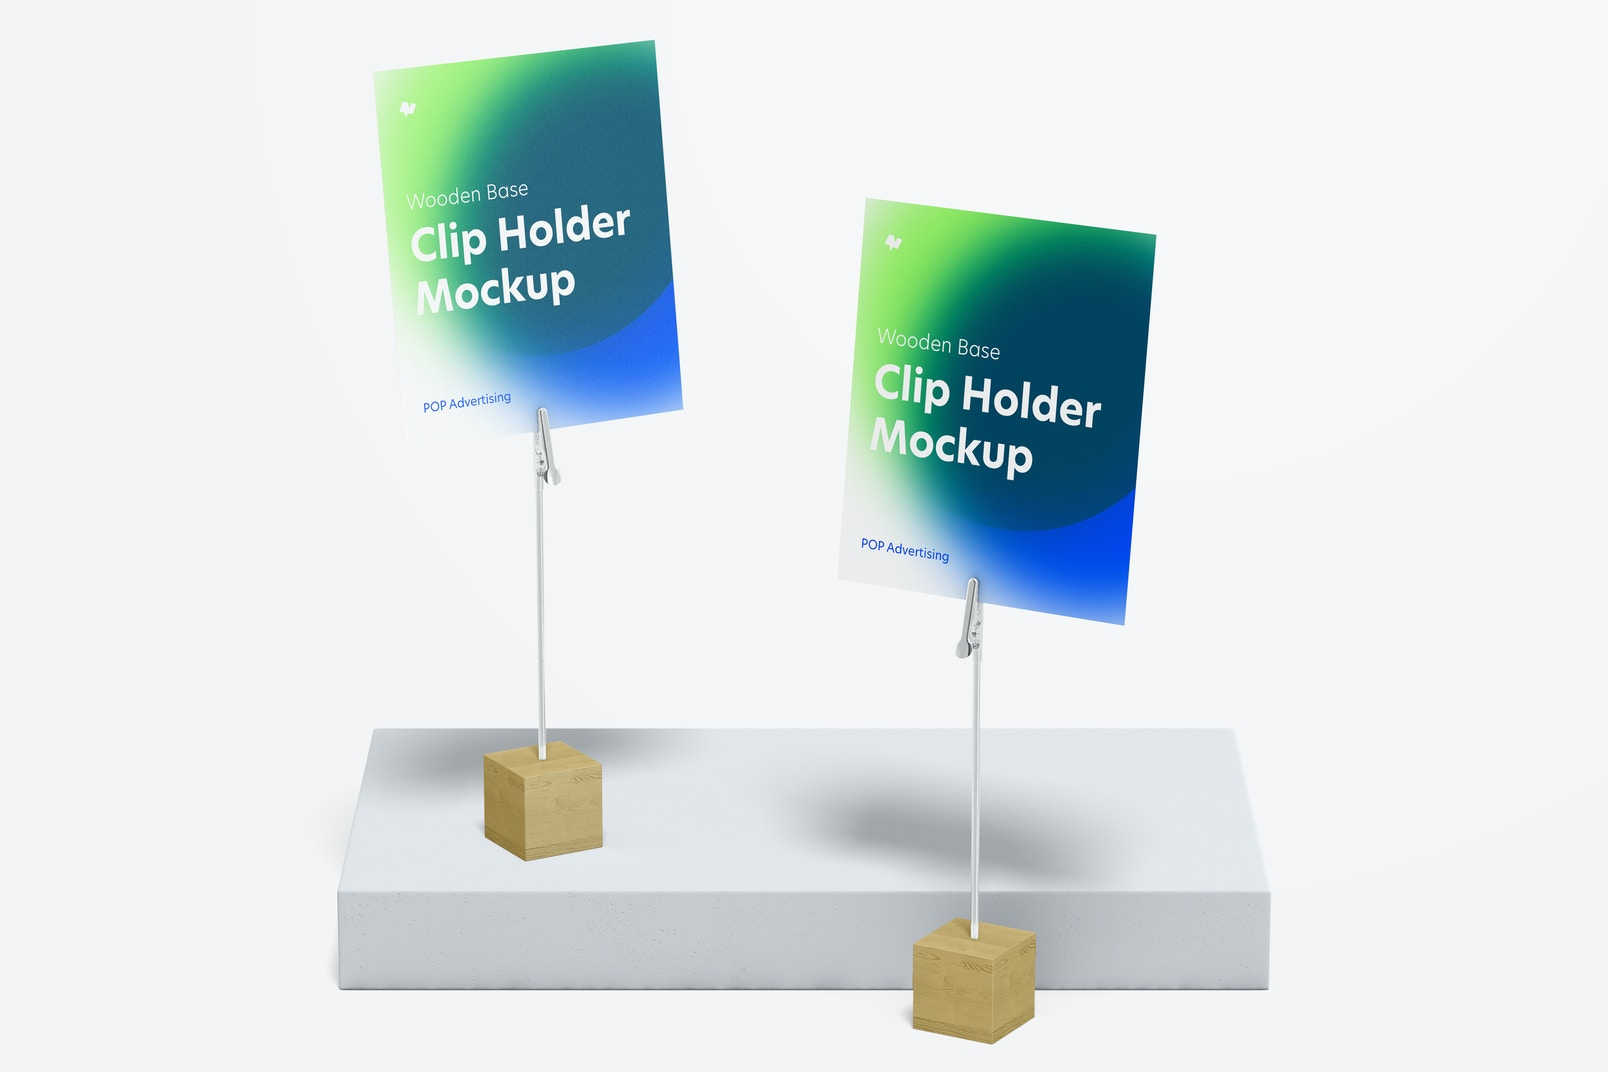 Wooden Base Photo Clip Holders Mockup, Front View